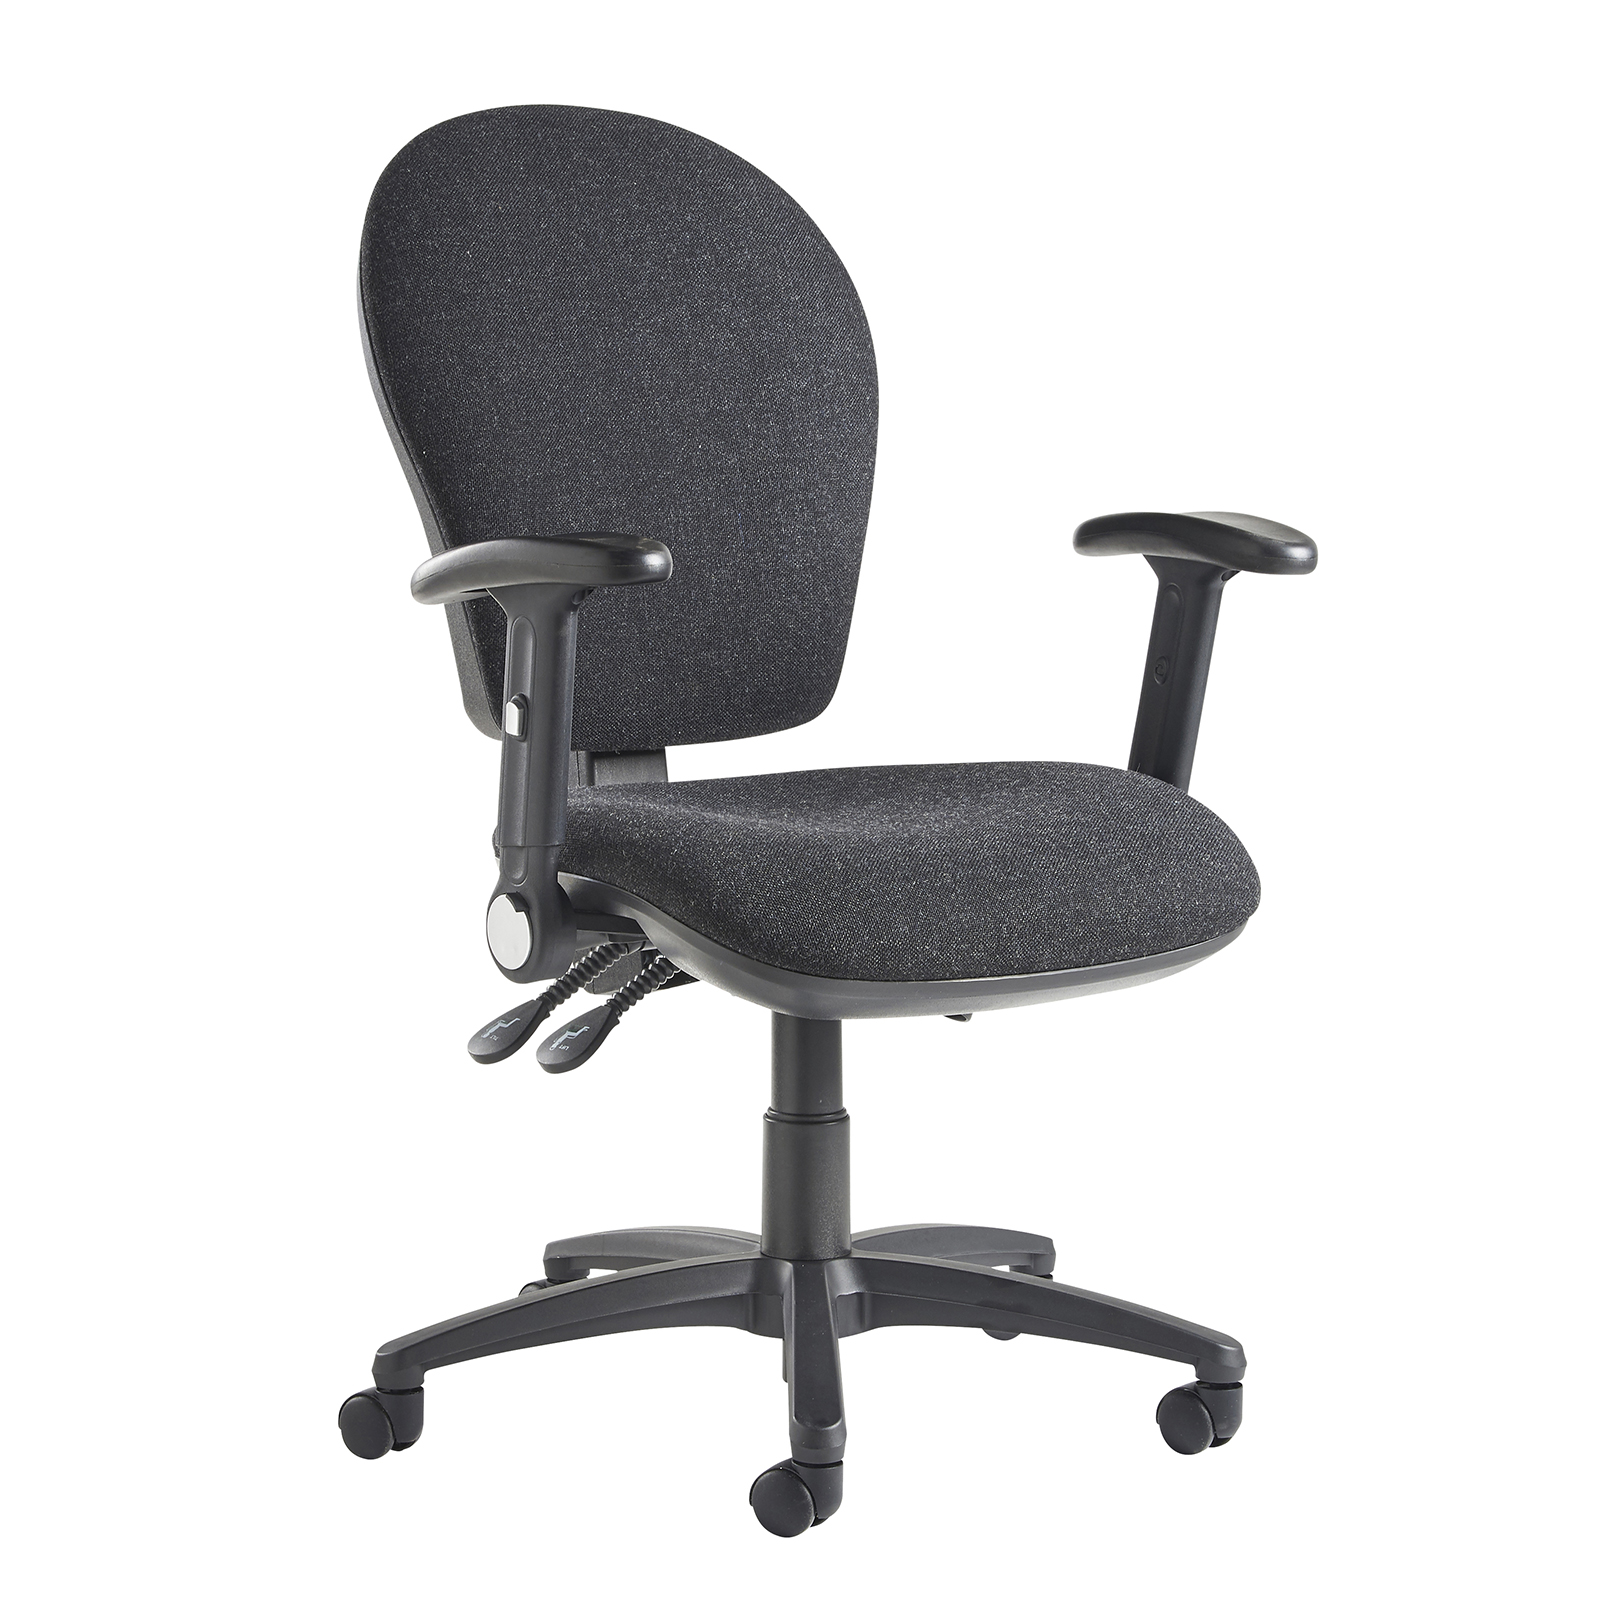 Lento high back operator chair with folding arms - charcoal